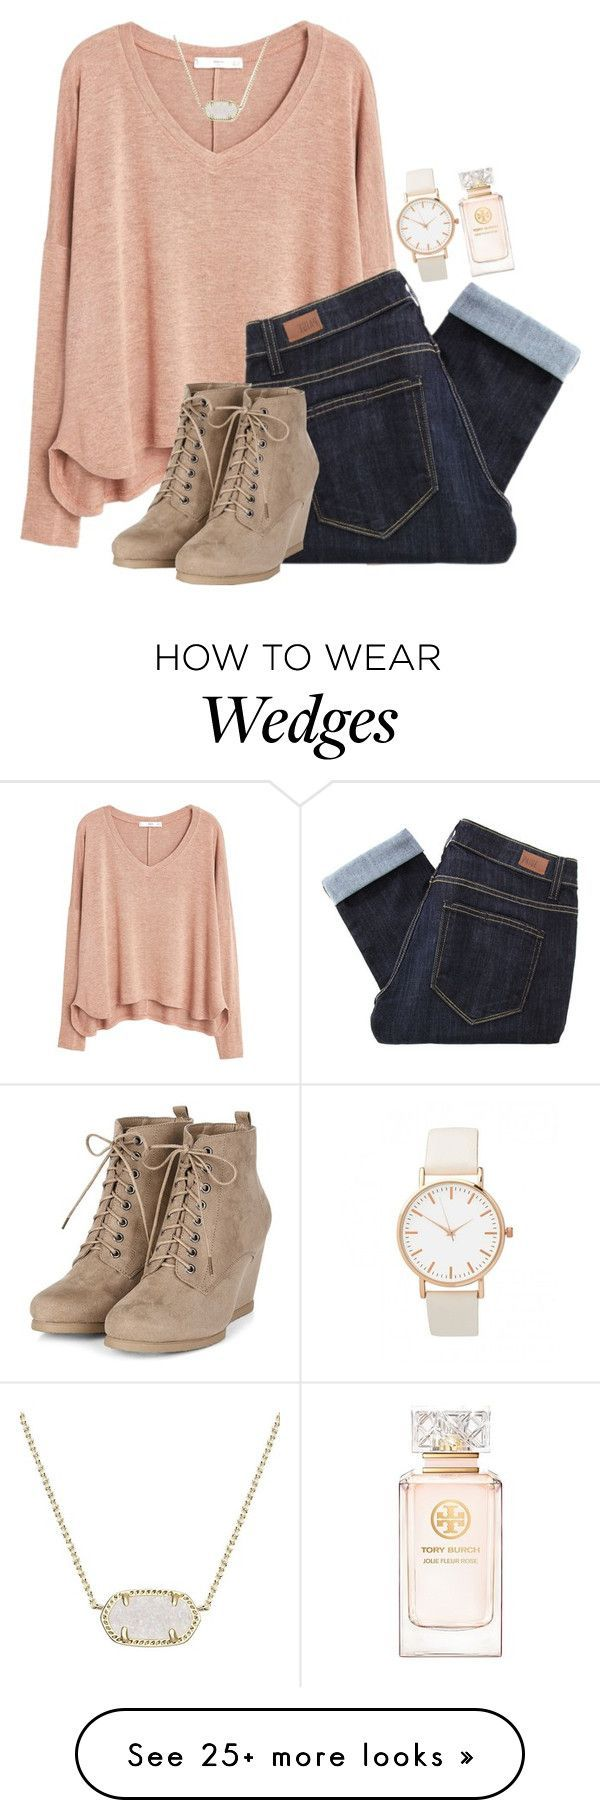 """Tag!"" by ashley-watson19 on Polyvore featuring MANGO, Paige Denim, Ke"